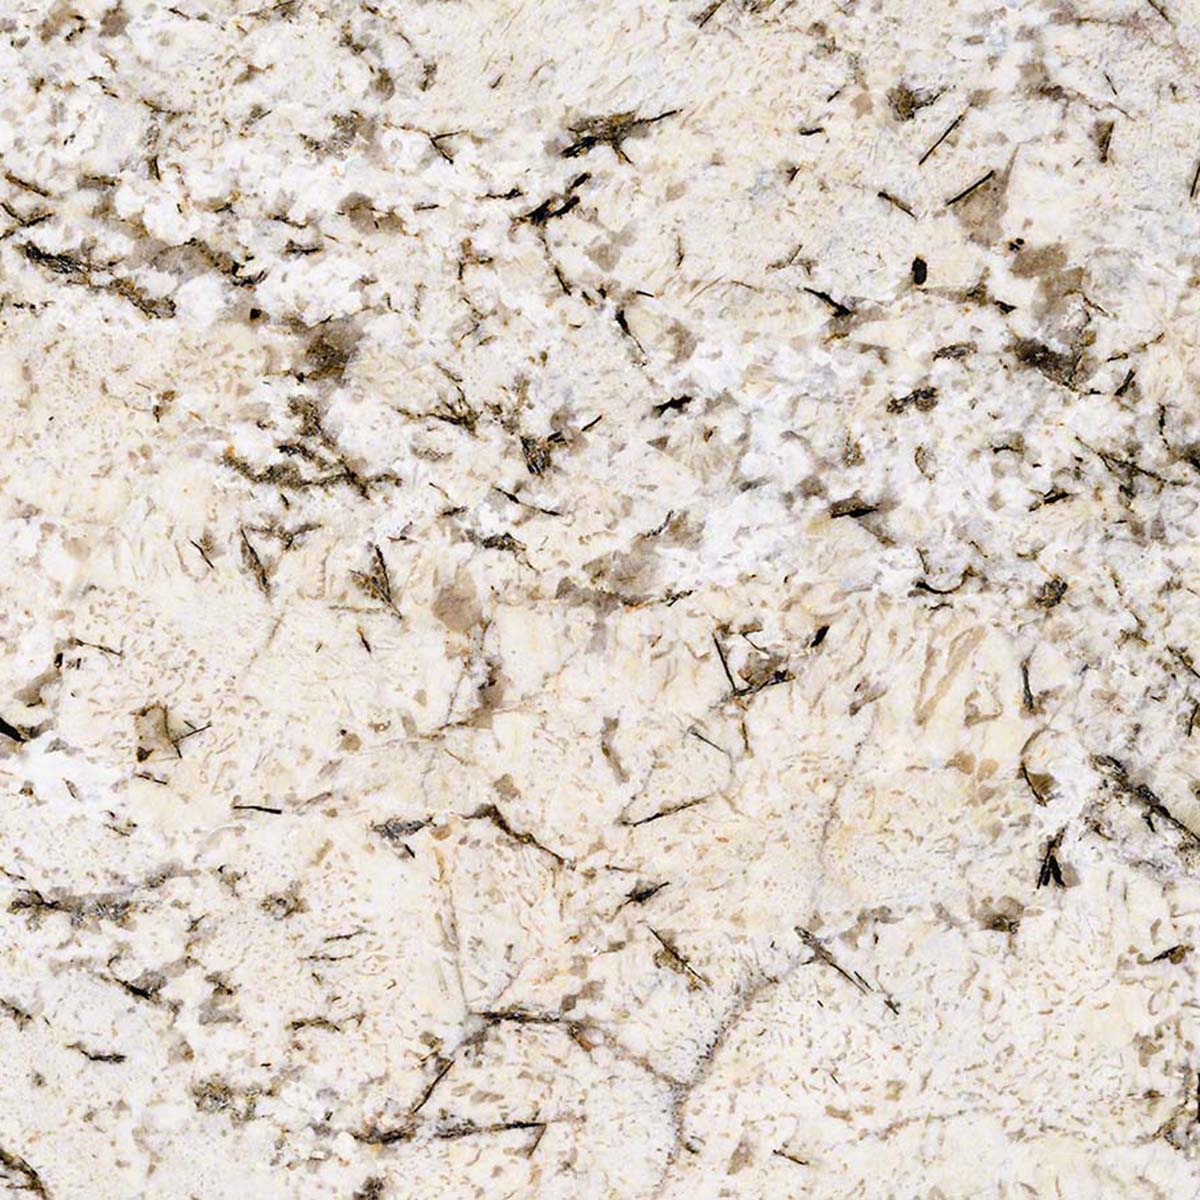 Brown And White Granite : White sand divine stoneworks